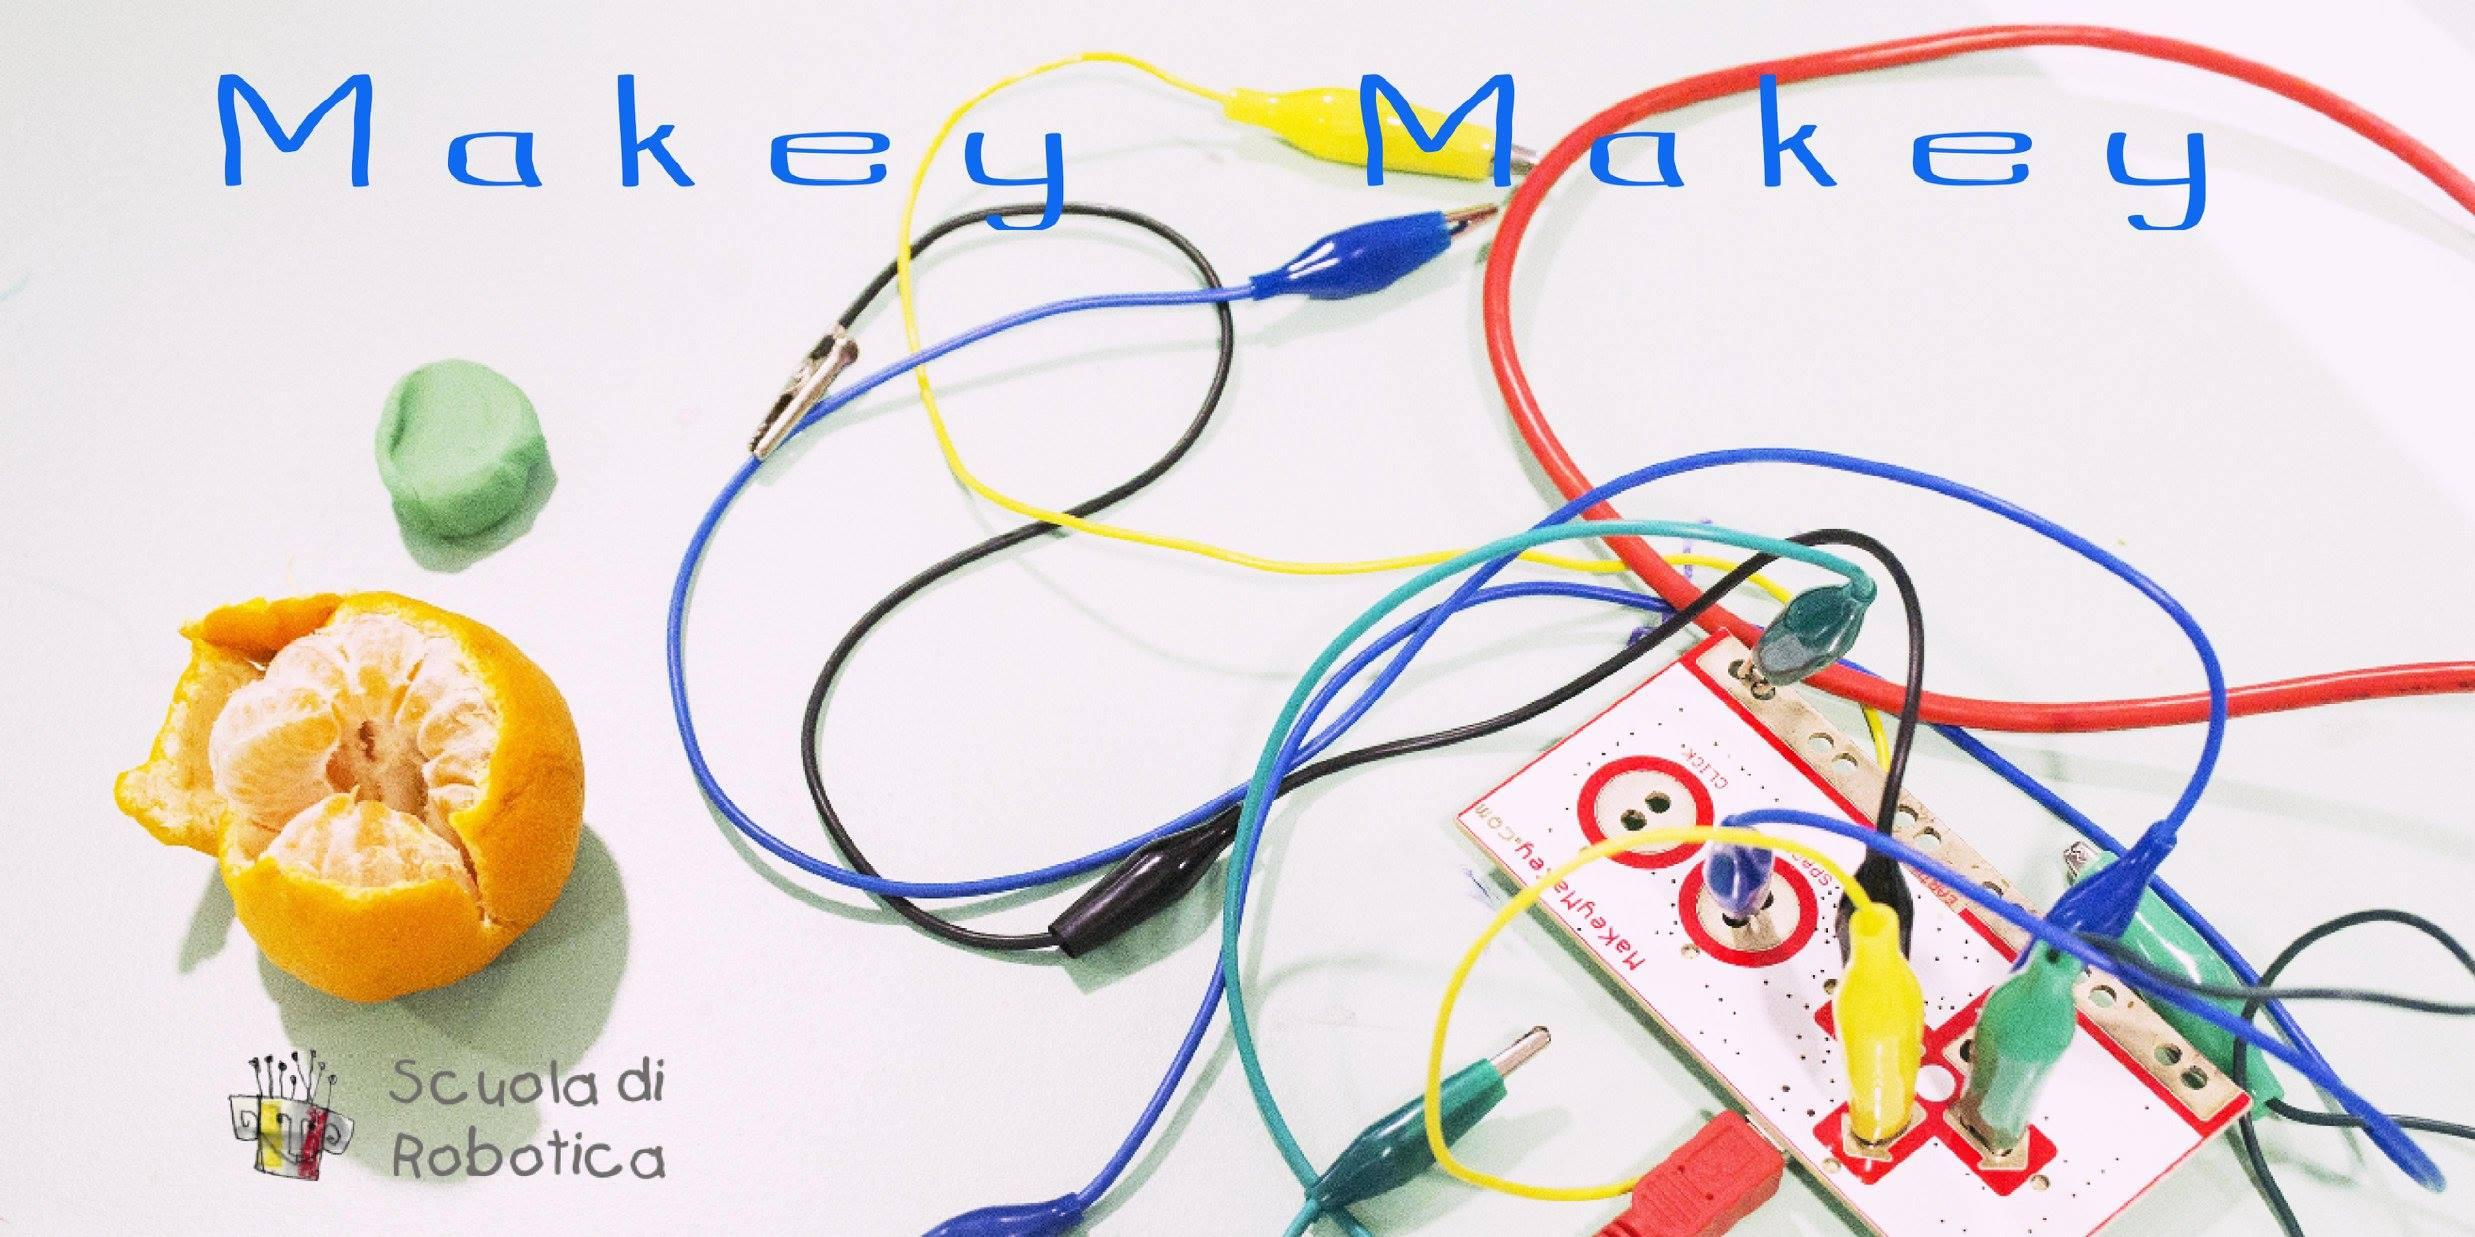 Coding gets alive: to join coding, ars and robots thanks to Makey Makey